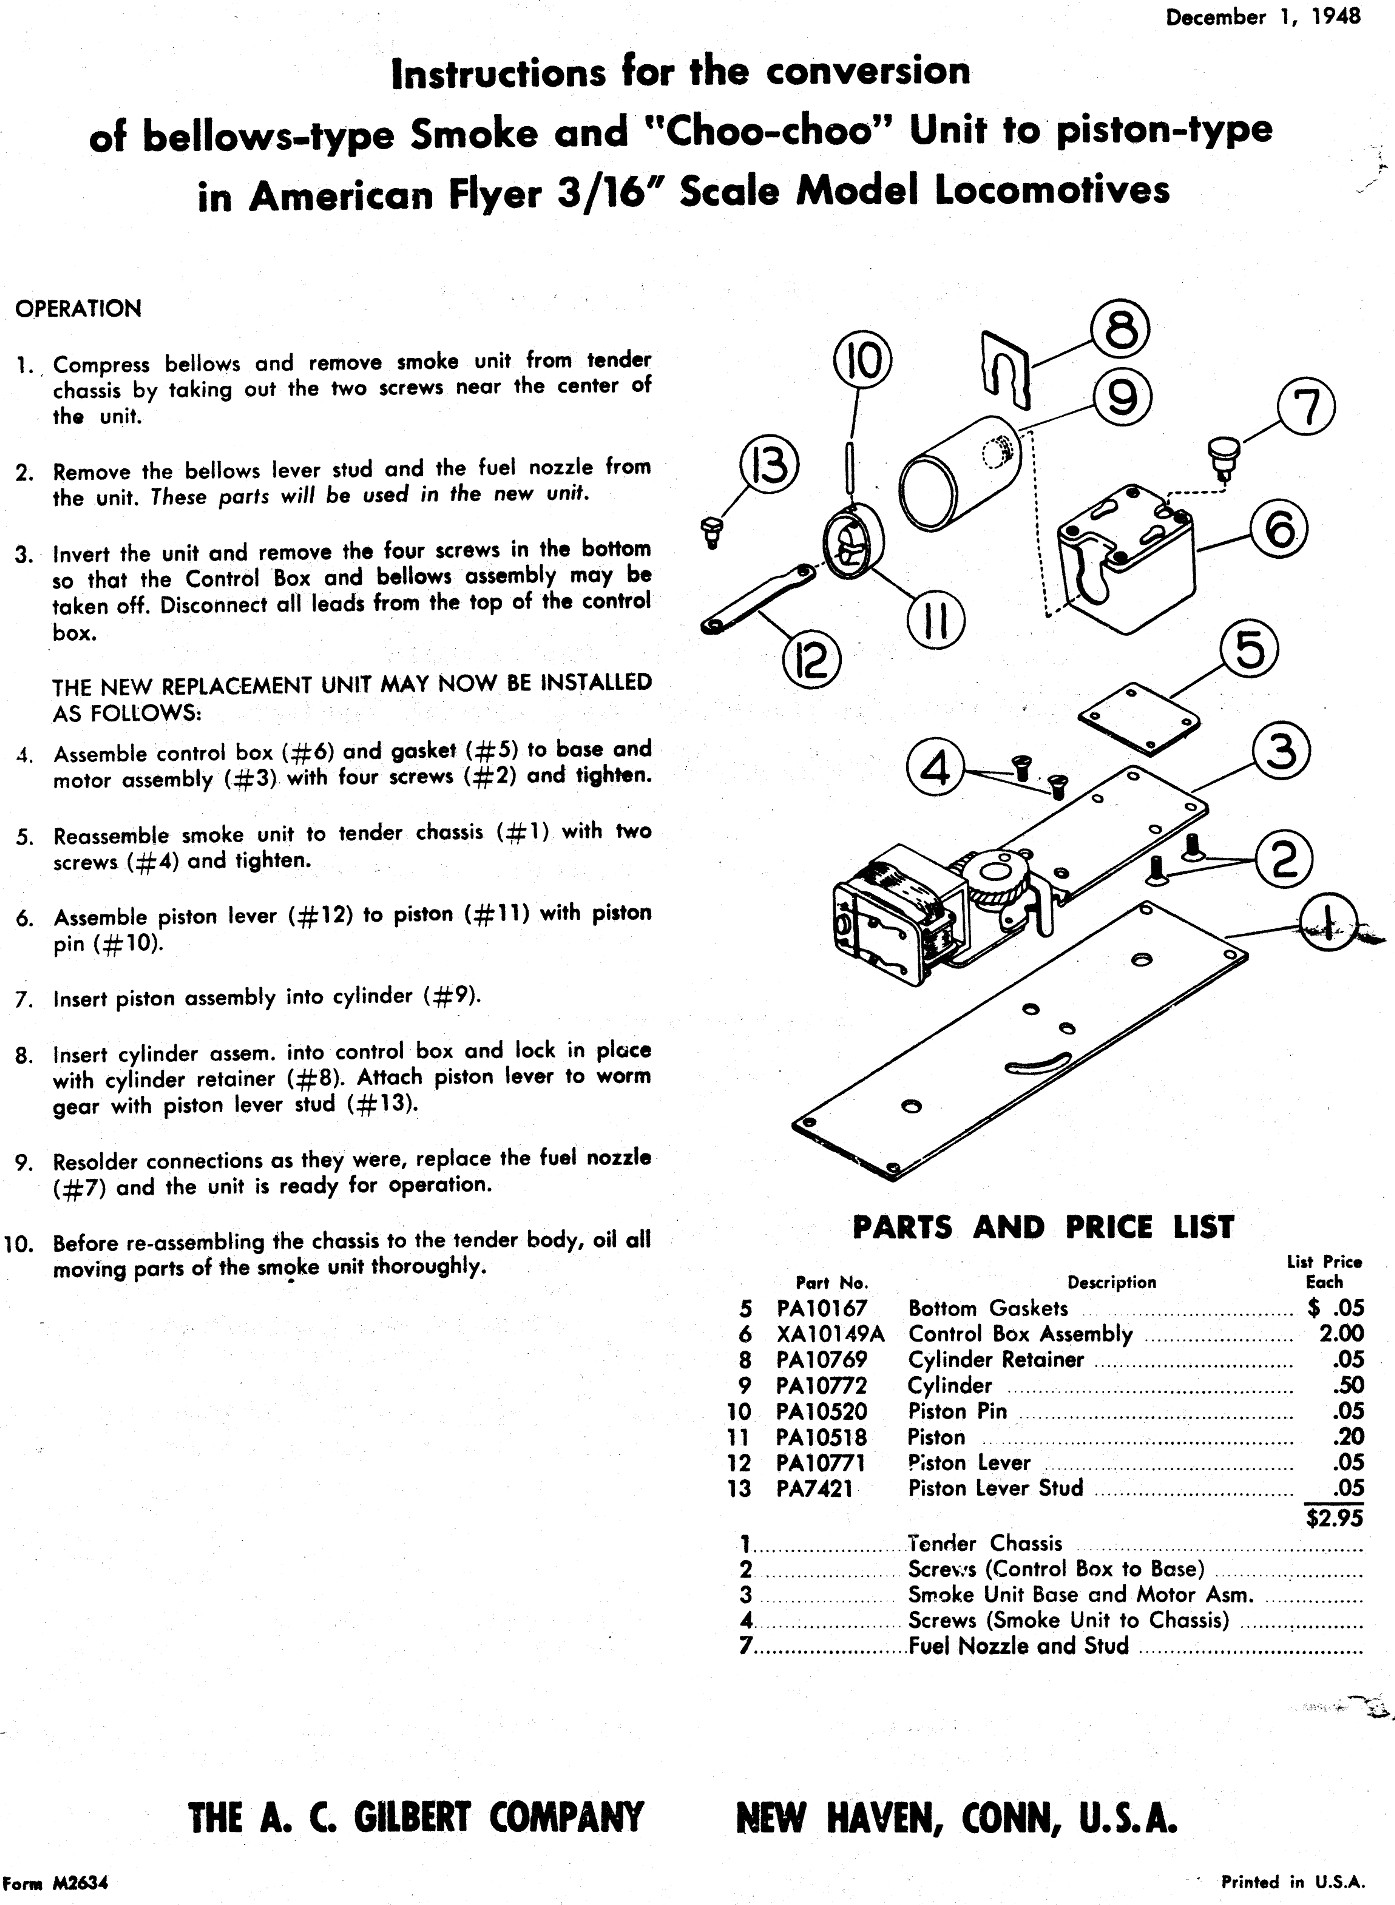 American Flyer Instructions for the Conversion of Bellow-Type Smoke &